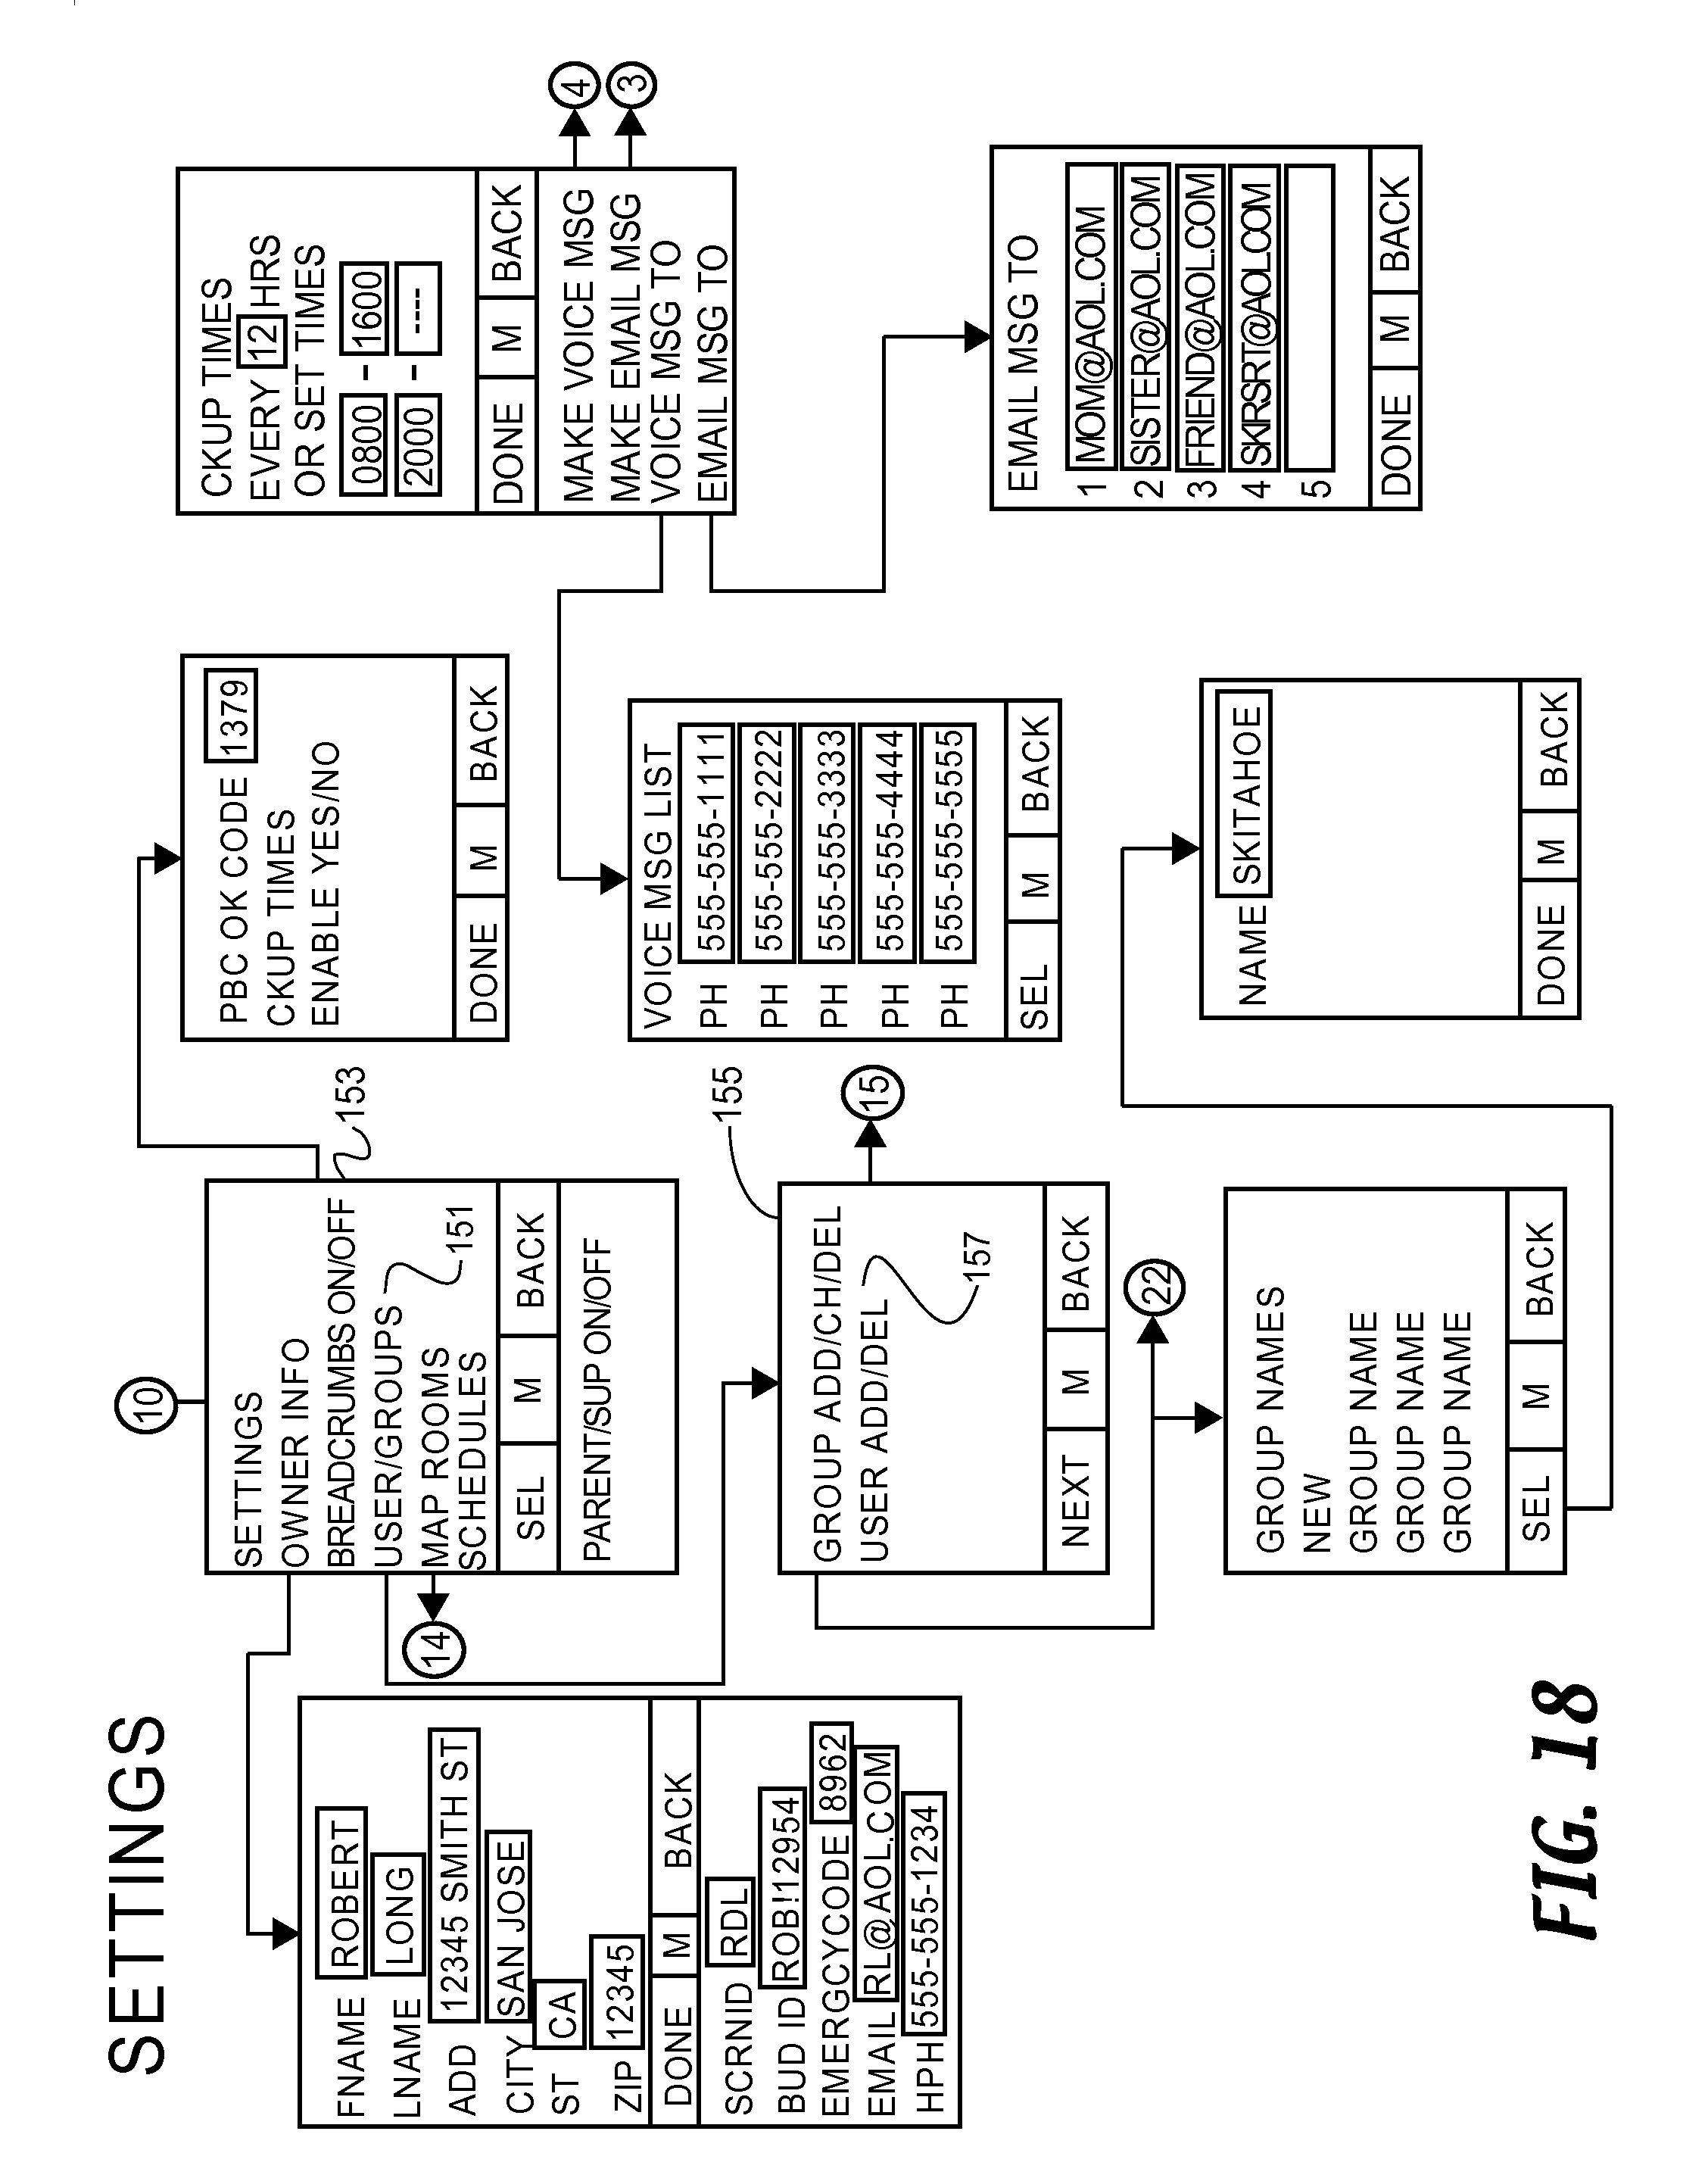 Us20140295895a1 Methods And Systems For Sharing Position Data Clifford Matrix 1 Wiring Diagram Between Subscribers Involving Multiple Wireless Providers Google Patents